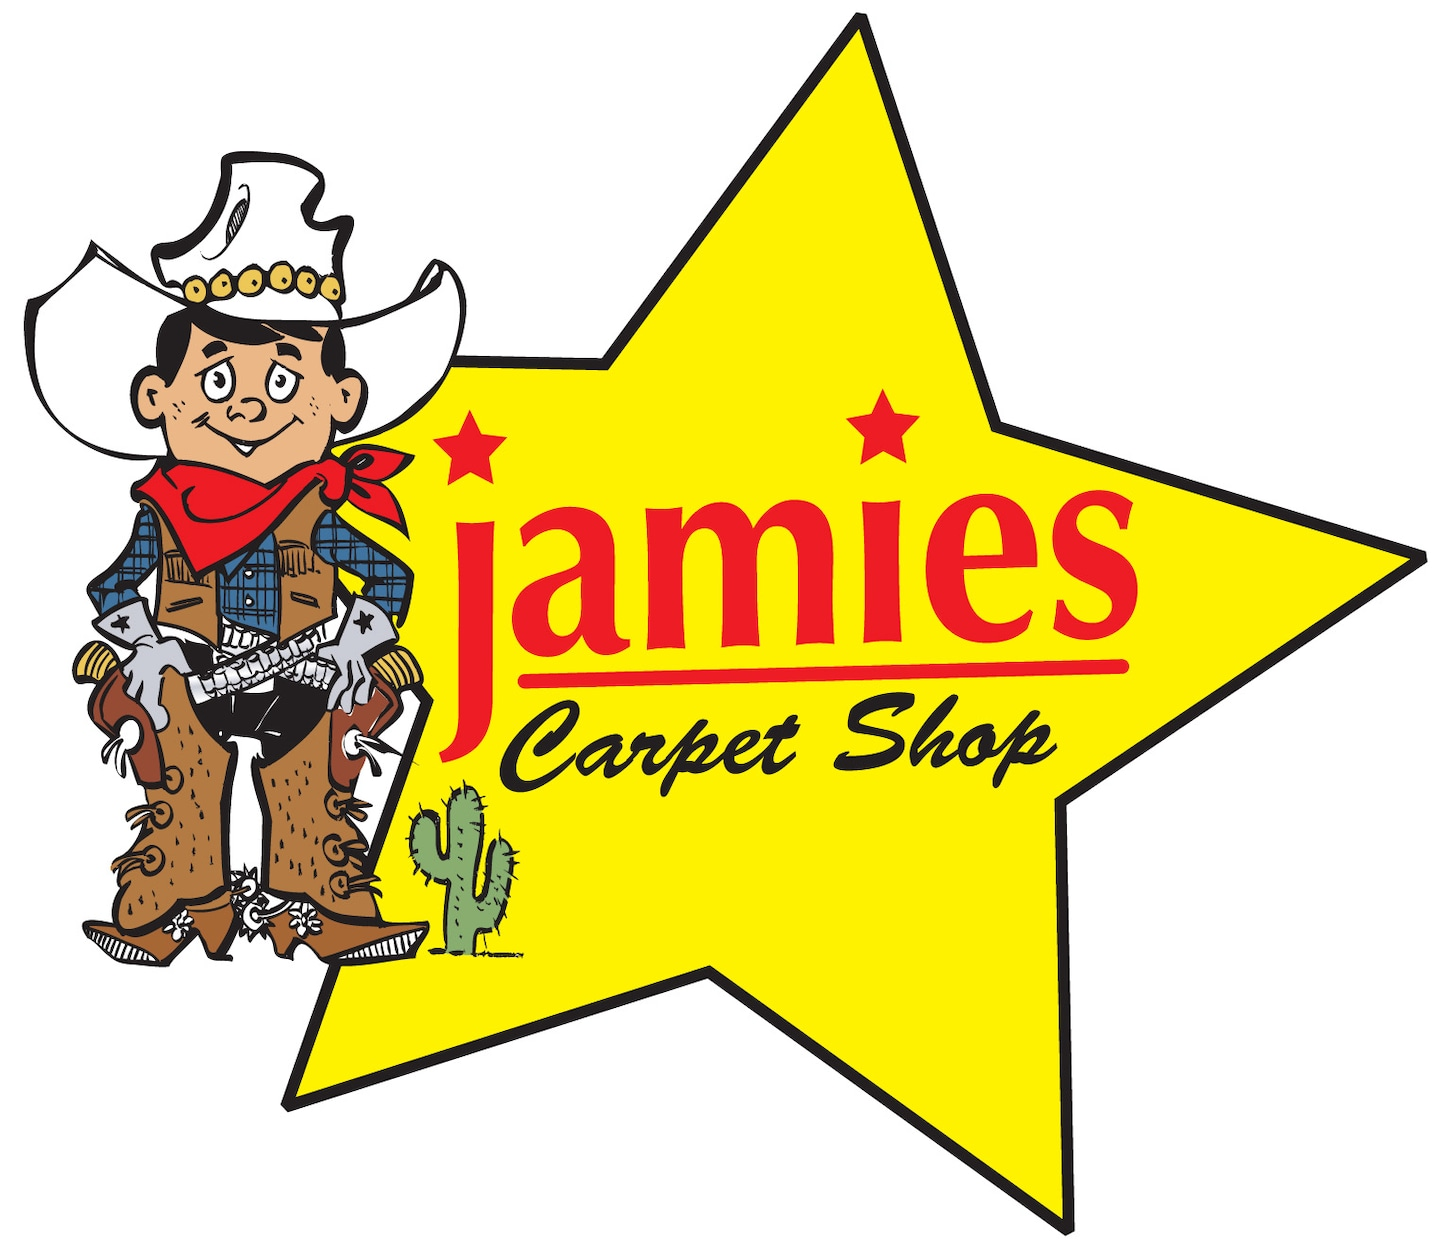 Jamie's Carpet Shop